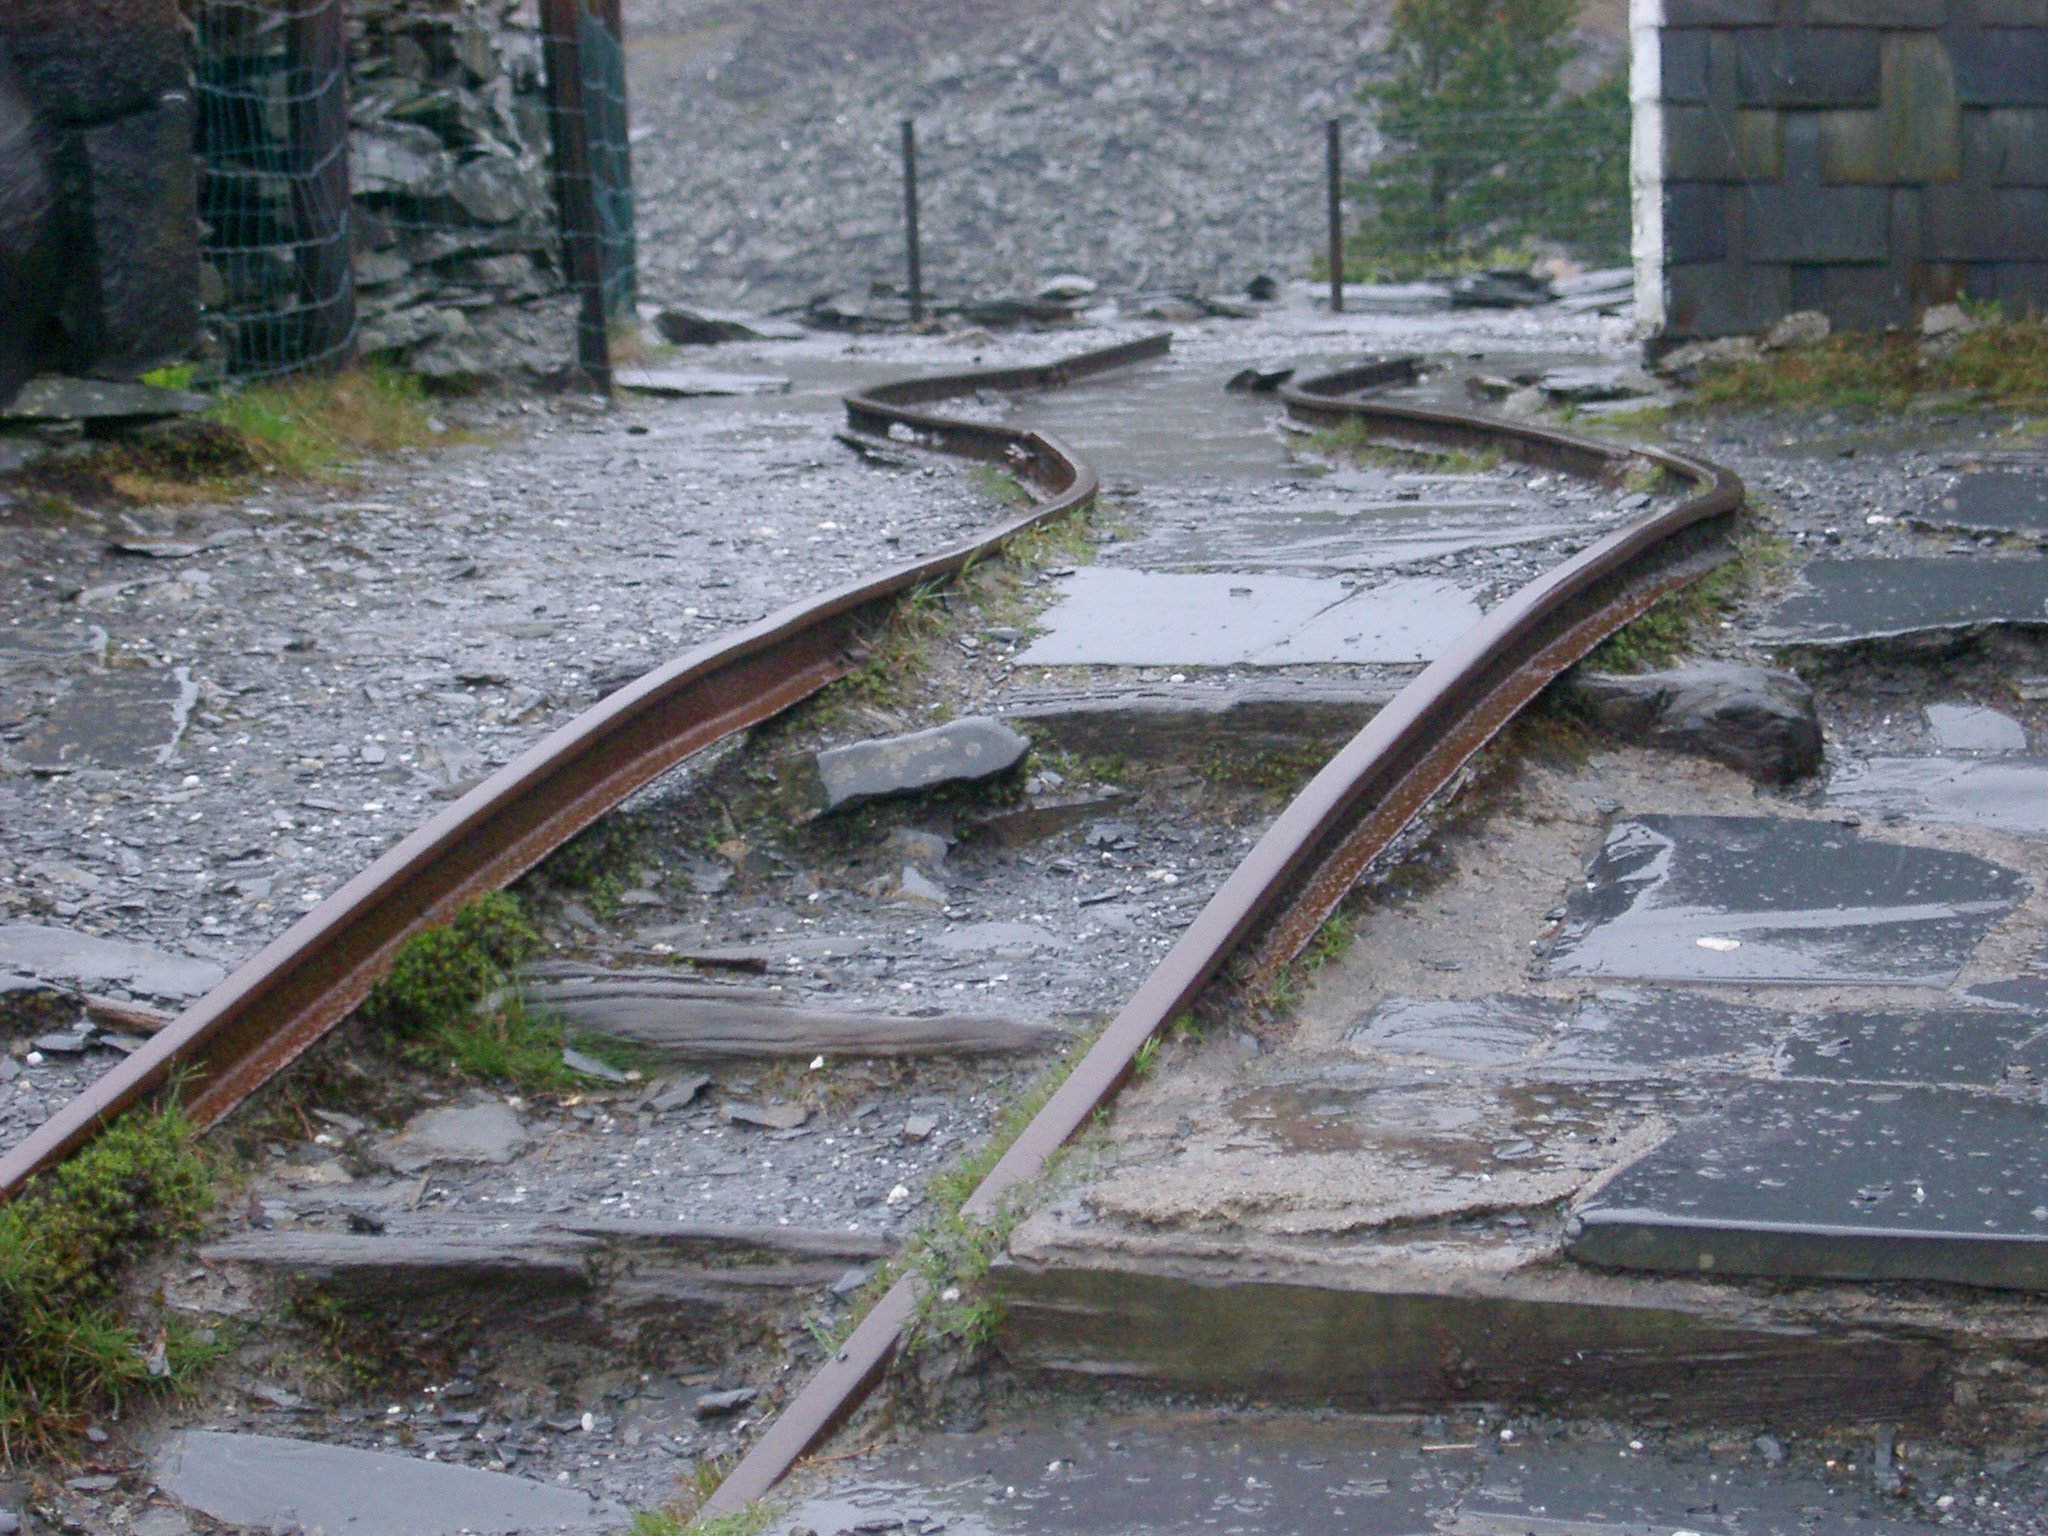 Damaged bent tracks in an old abandoned slate mine, low angle view showing the abrupt curve